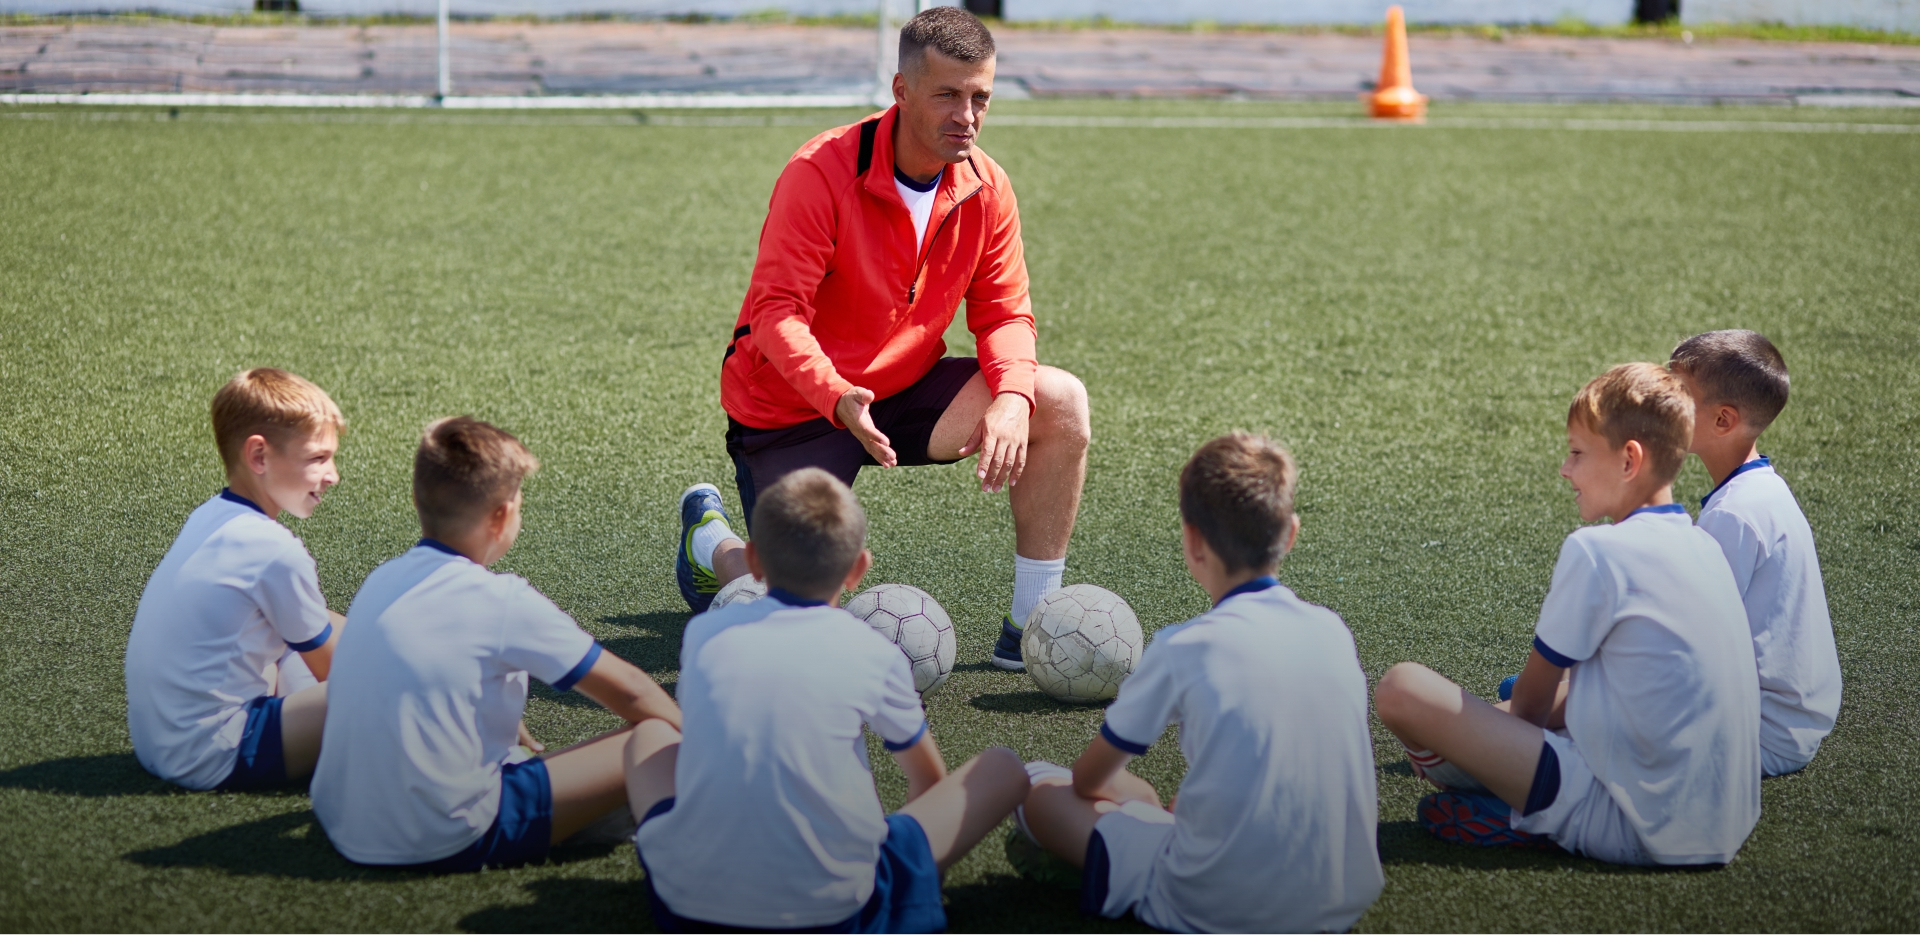 adolescent boys soccer team surround coach as he takes a knee to offer words of guidance